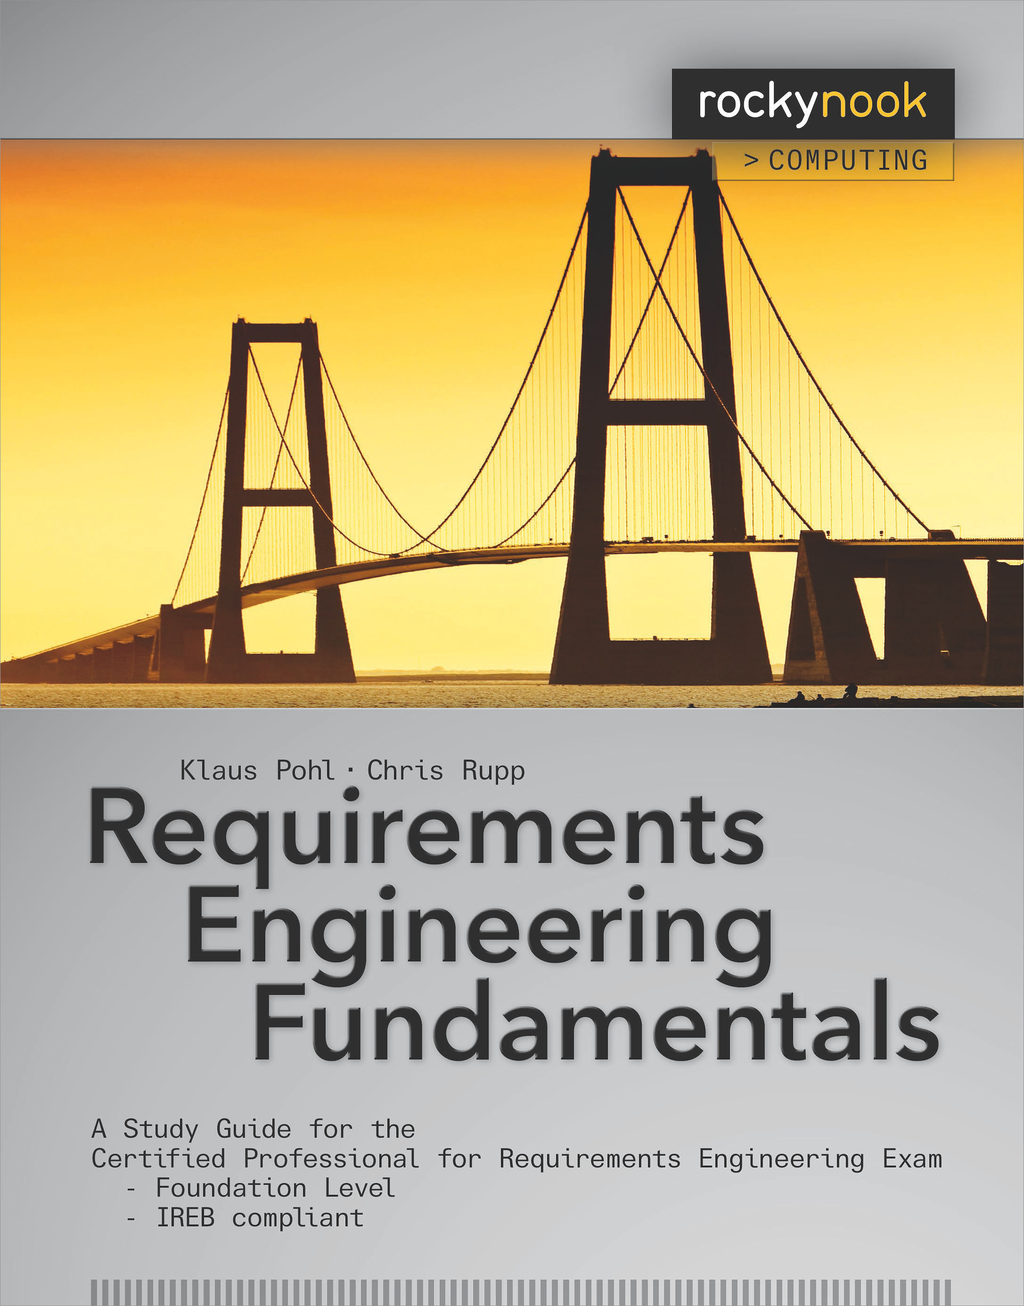 Requirements Engineering Fundamentals By: Chris Rupp,Klaus Pohl